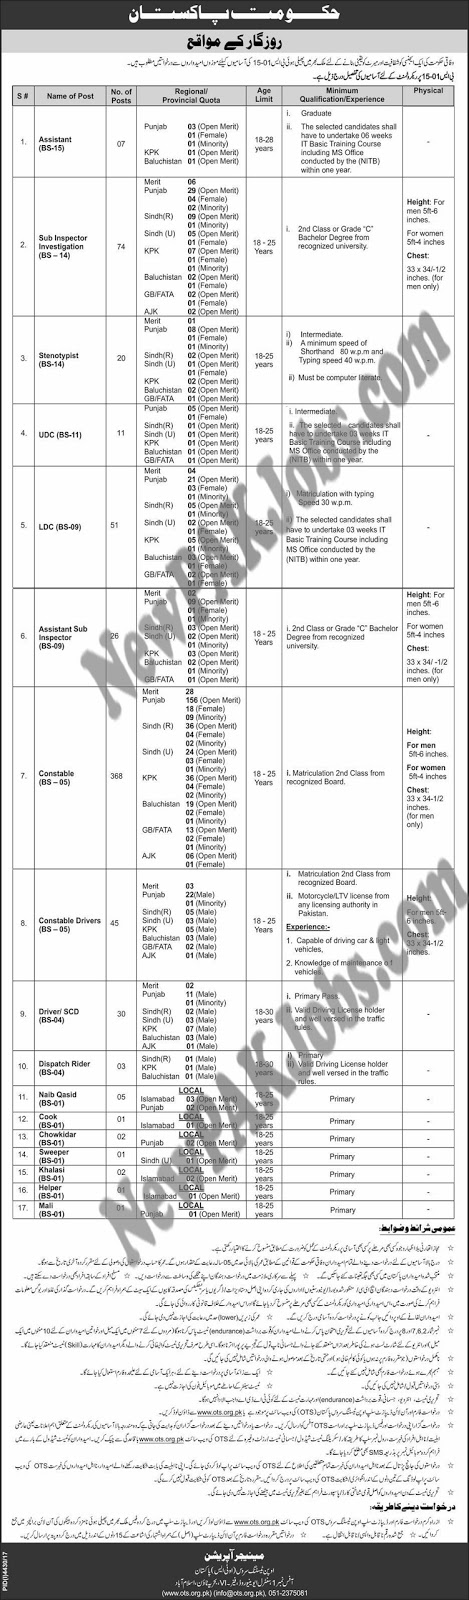 Latest 2018 OTS Jobs in Federal Government Agency, Govt of Pakistan